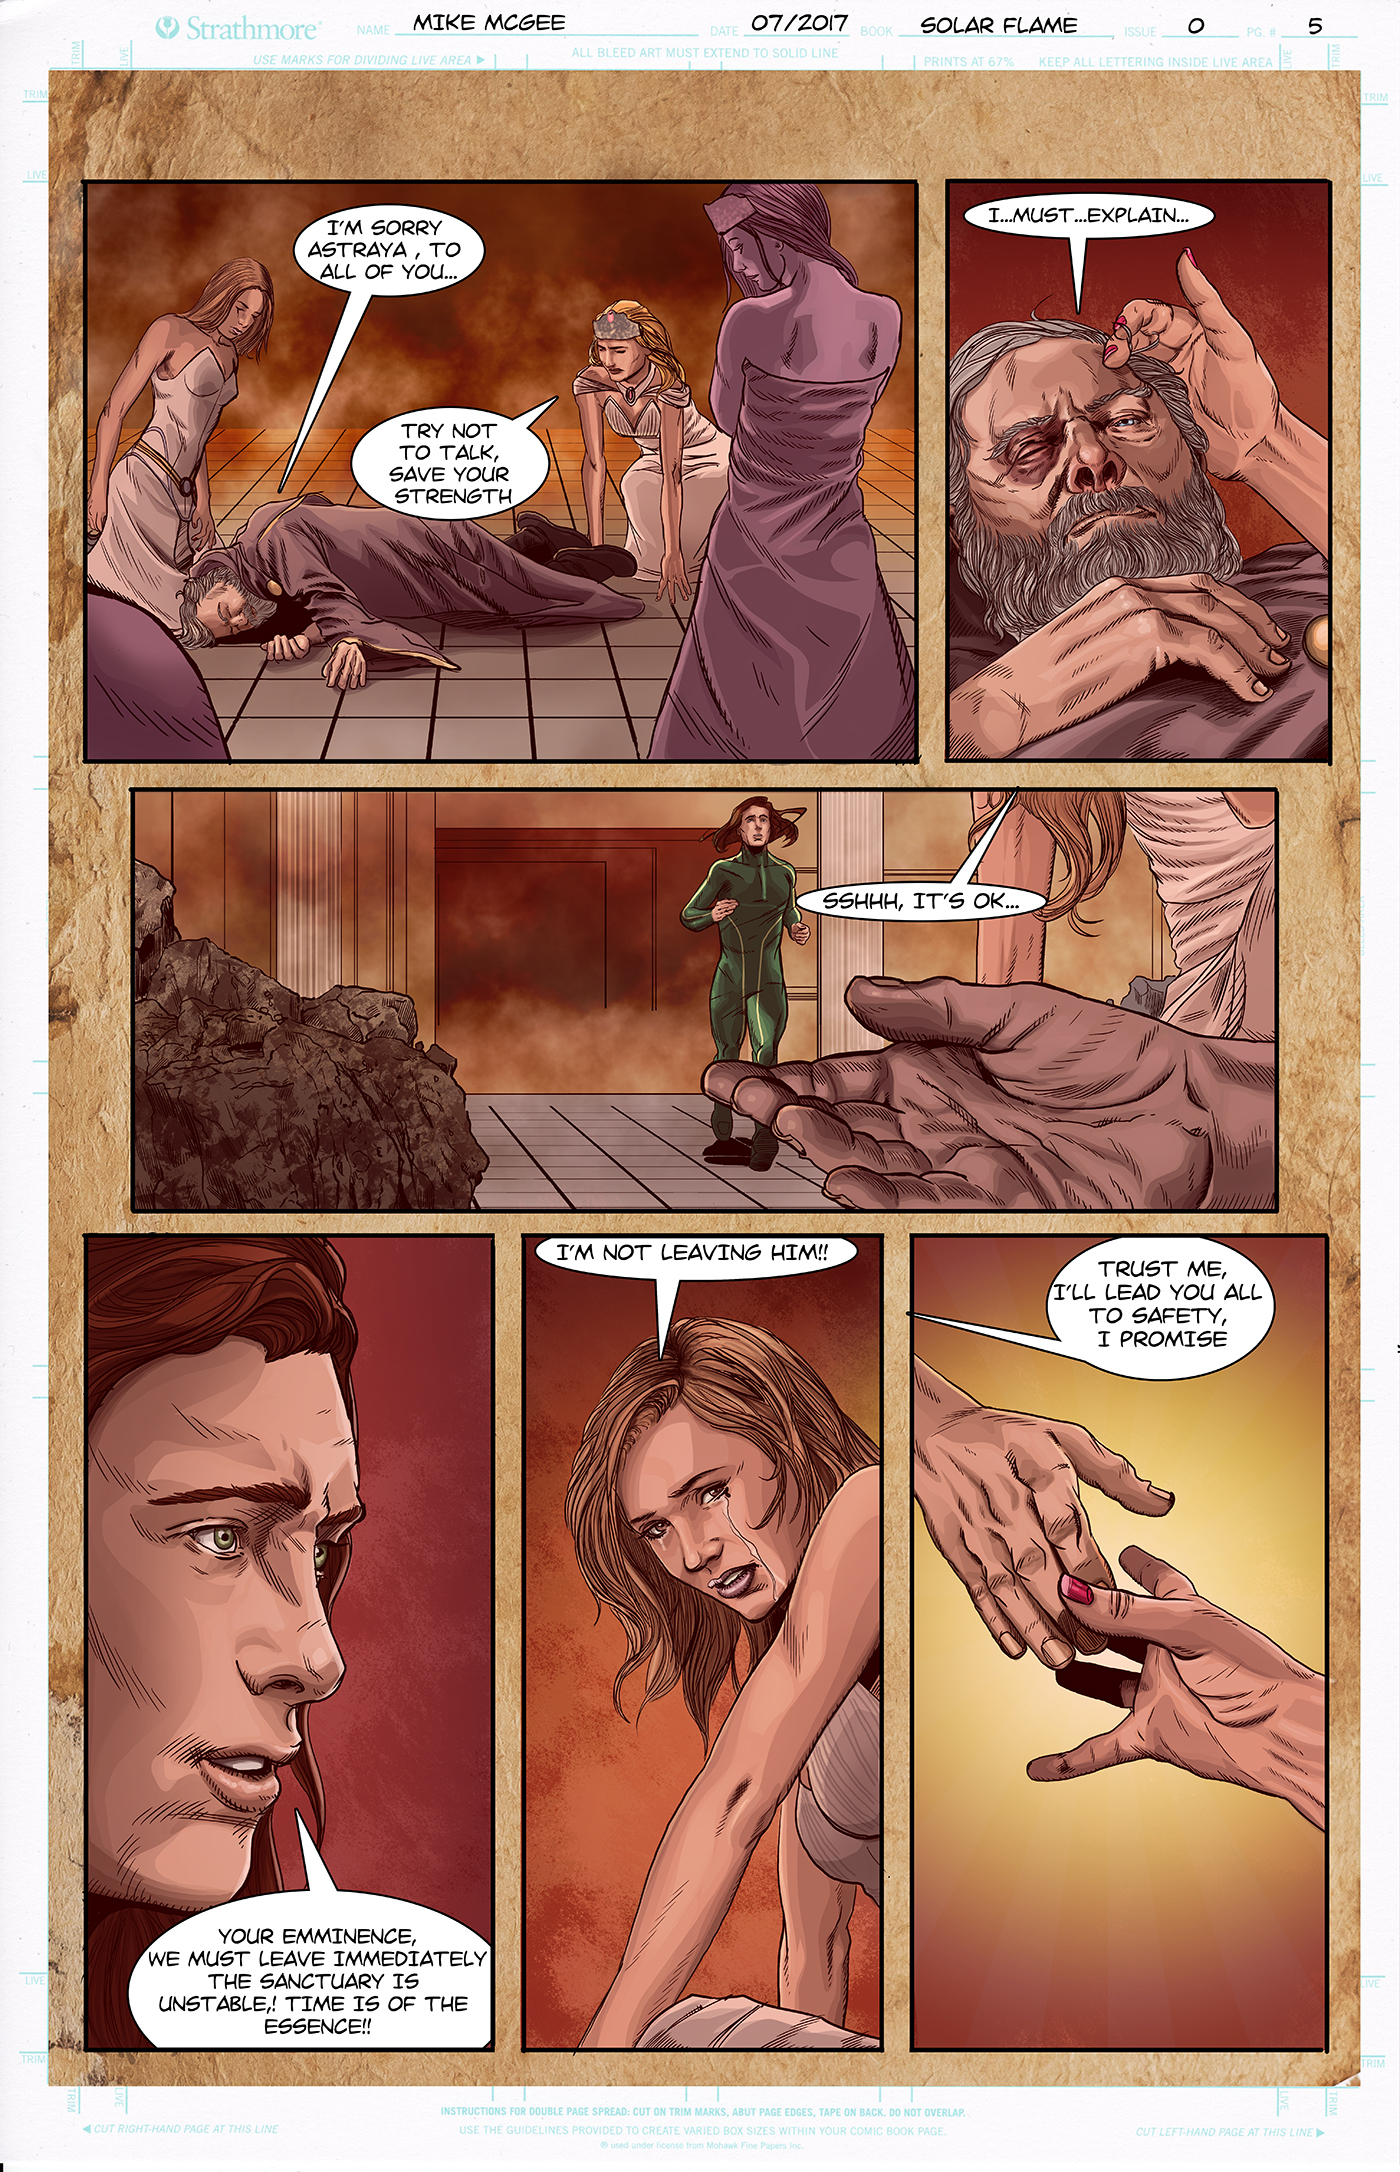 Solar Flame Comic Page